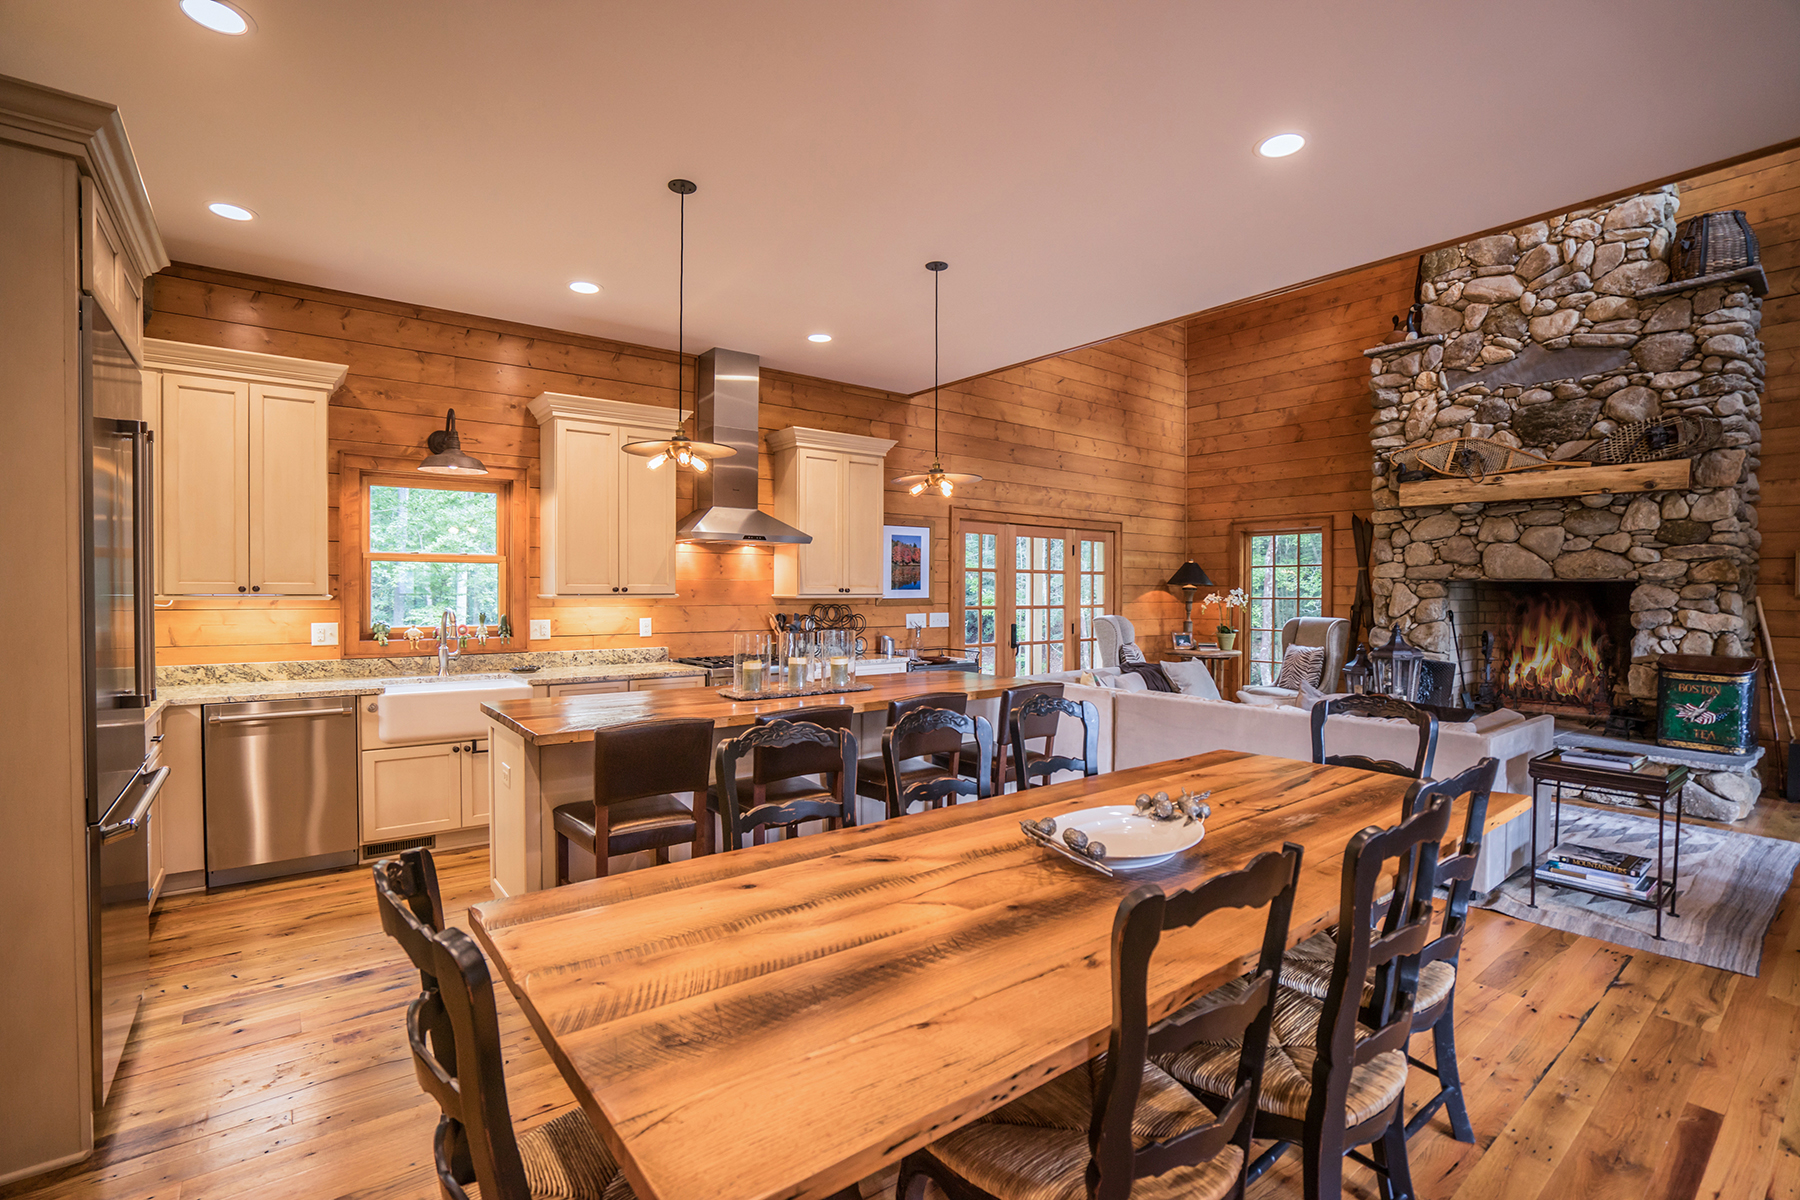 Additional photo for property listing at 183 ACRE BLUE RIDGE MOUNTAIN ESTATE 7035  Johns River Rd,  Blowing Rock, North Carolina 28605 United States